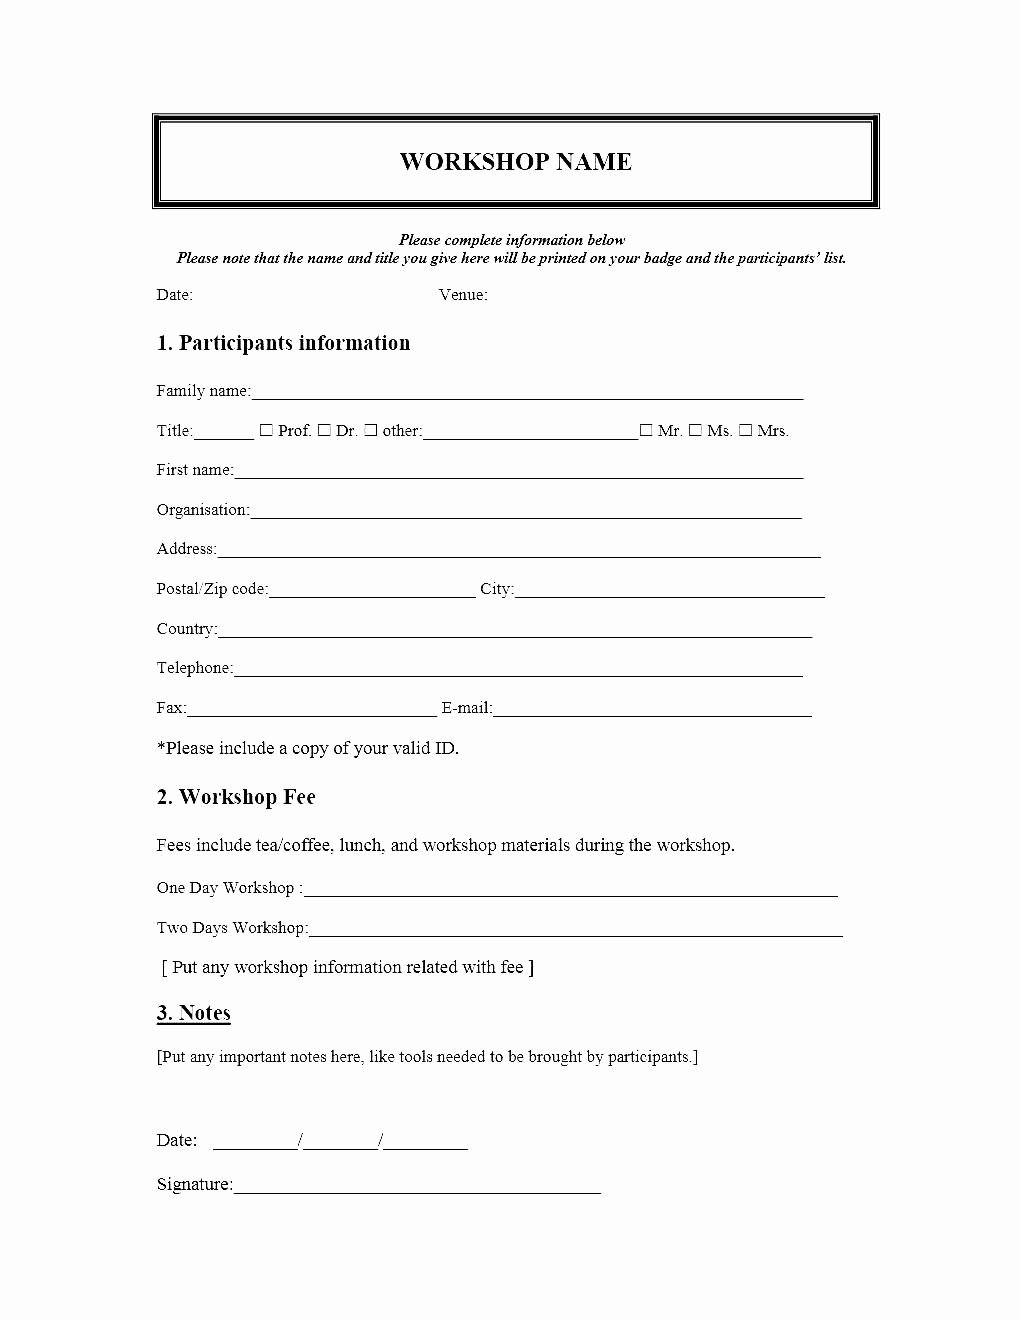 Registration form Template Word Luxury event Registration form Template Microsoft Word